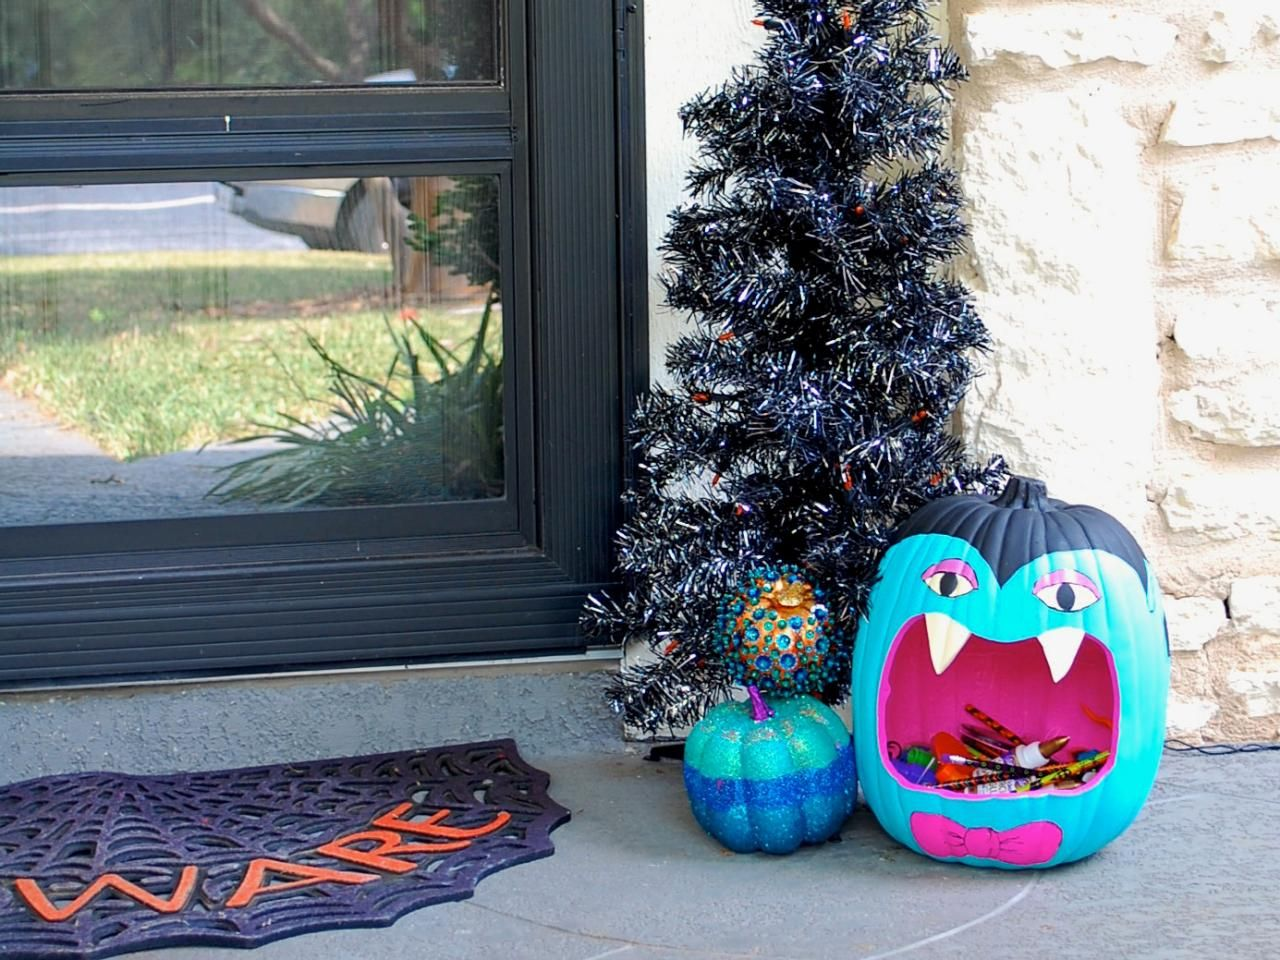 Halloween Decorations DIY Halloween, Teal pumpkin and Whimsical